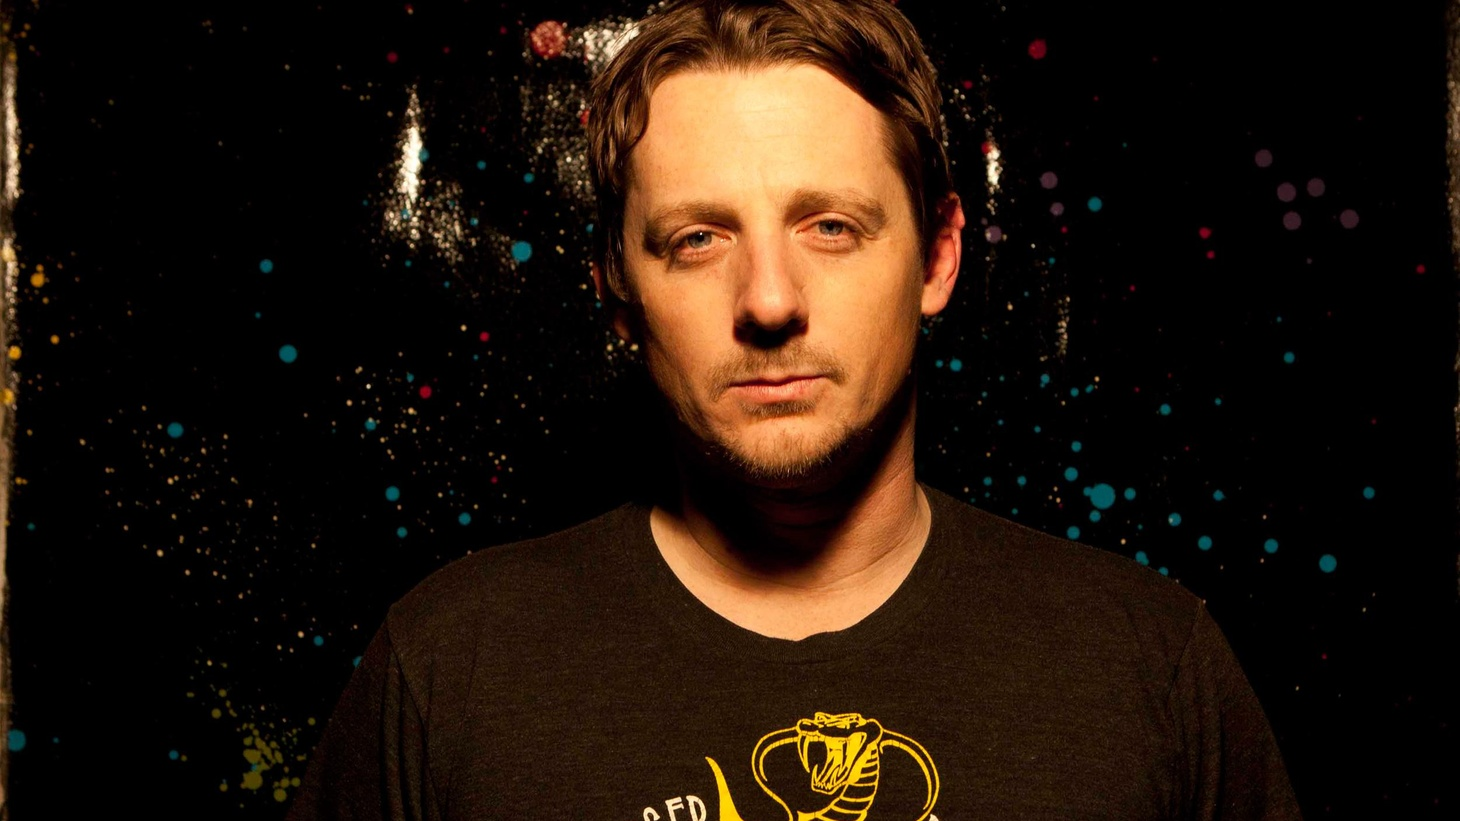 Sturgill Simpson is a young country singer that has a classic timeless sound.